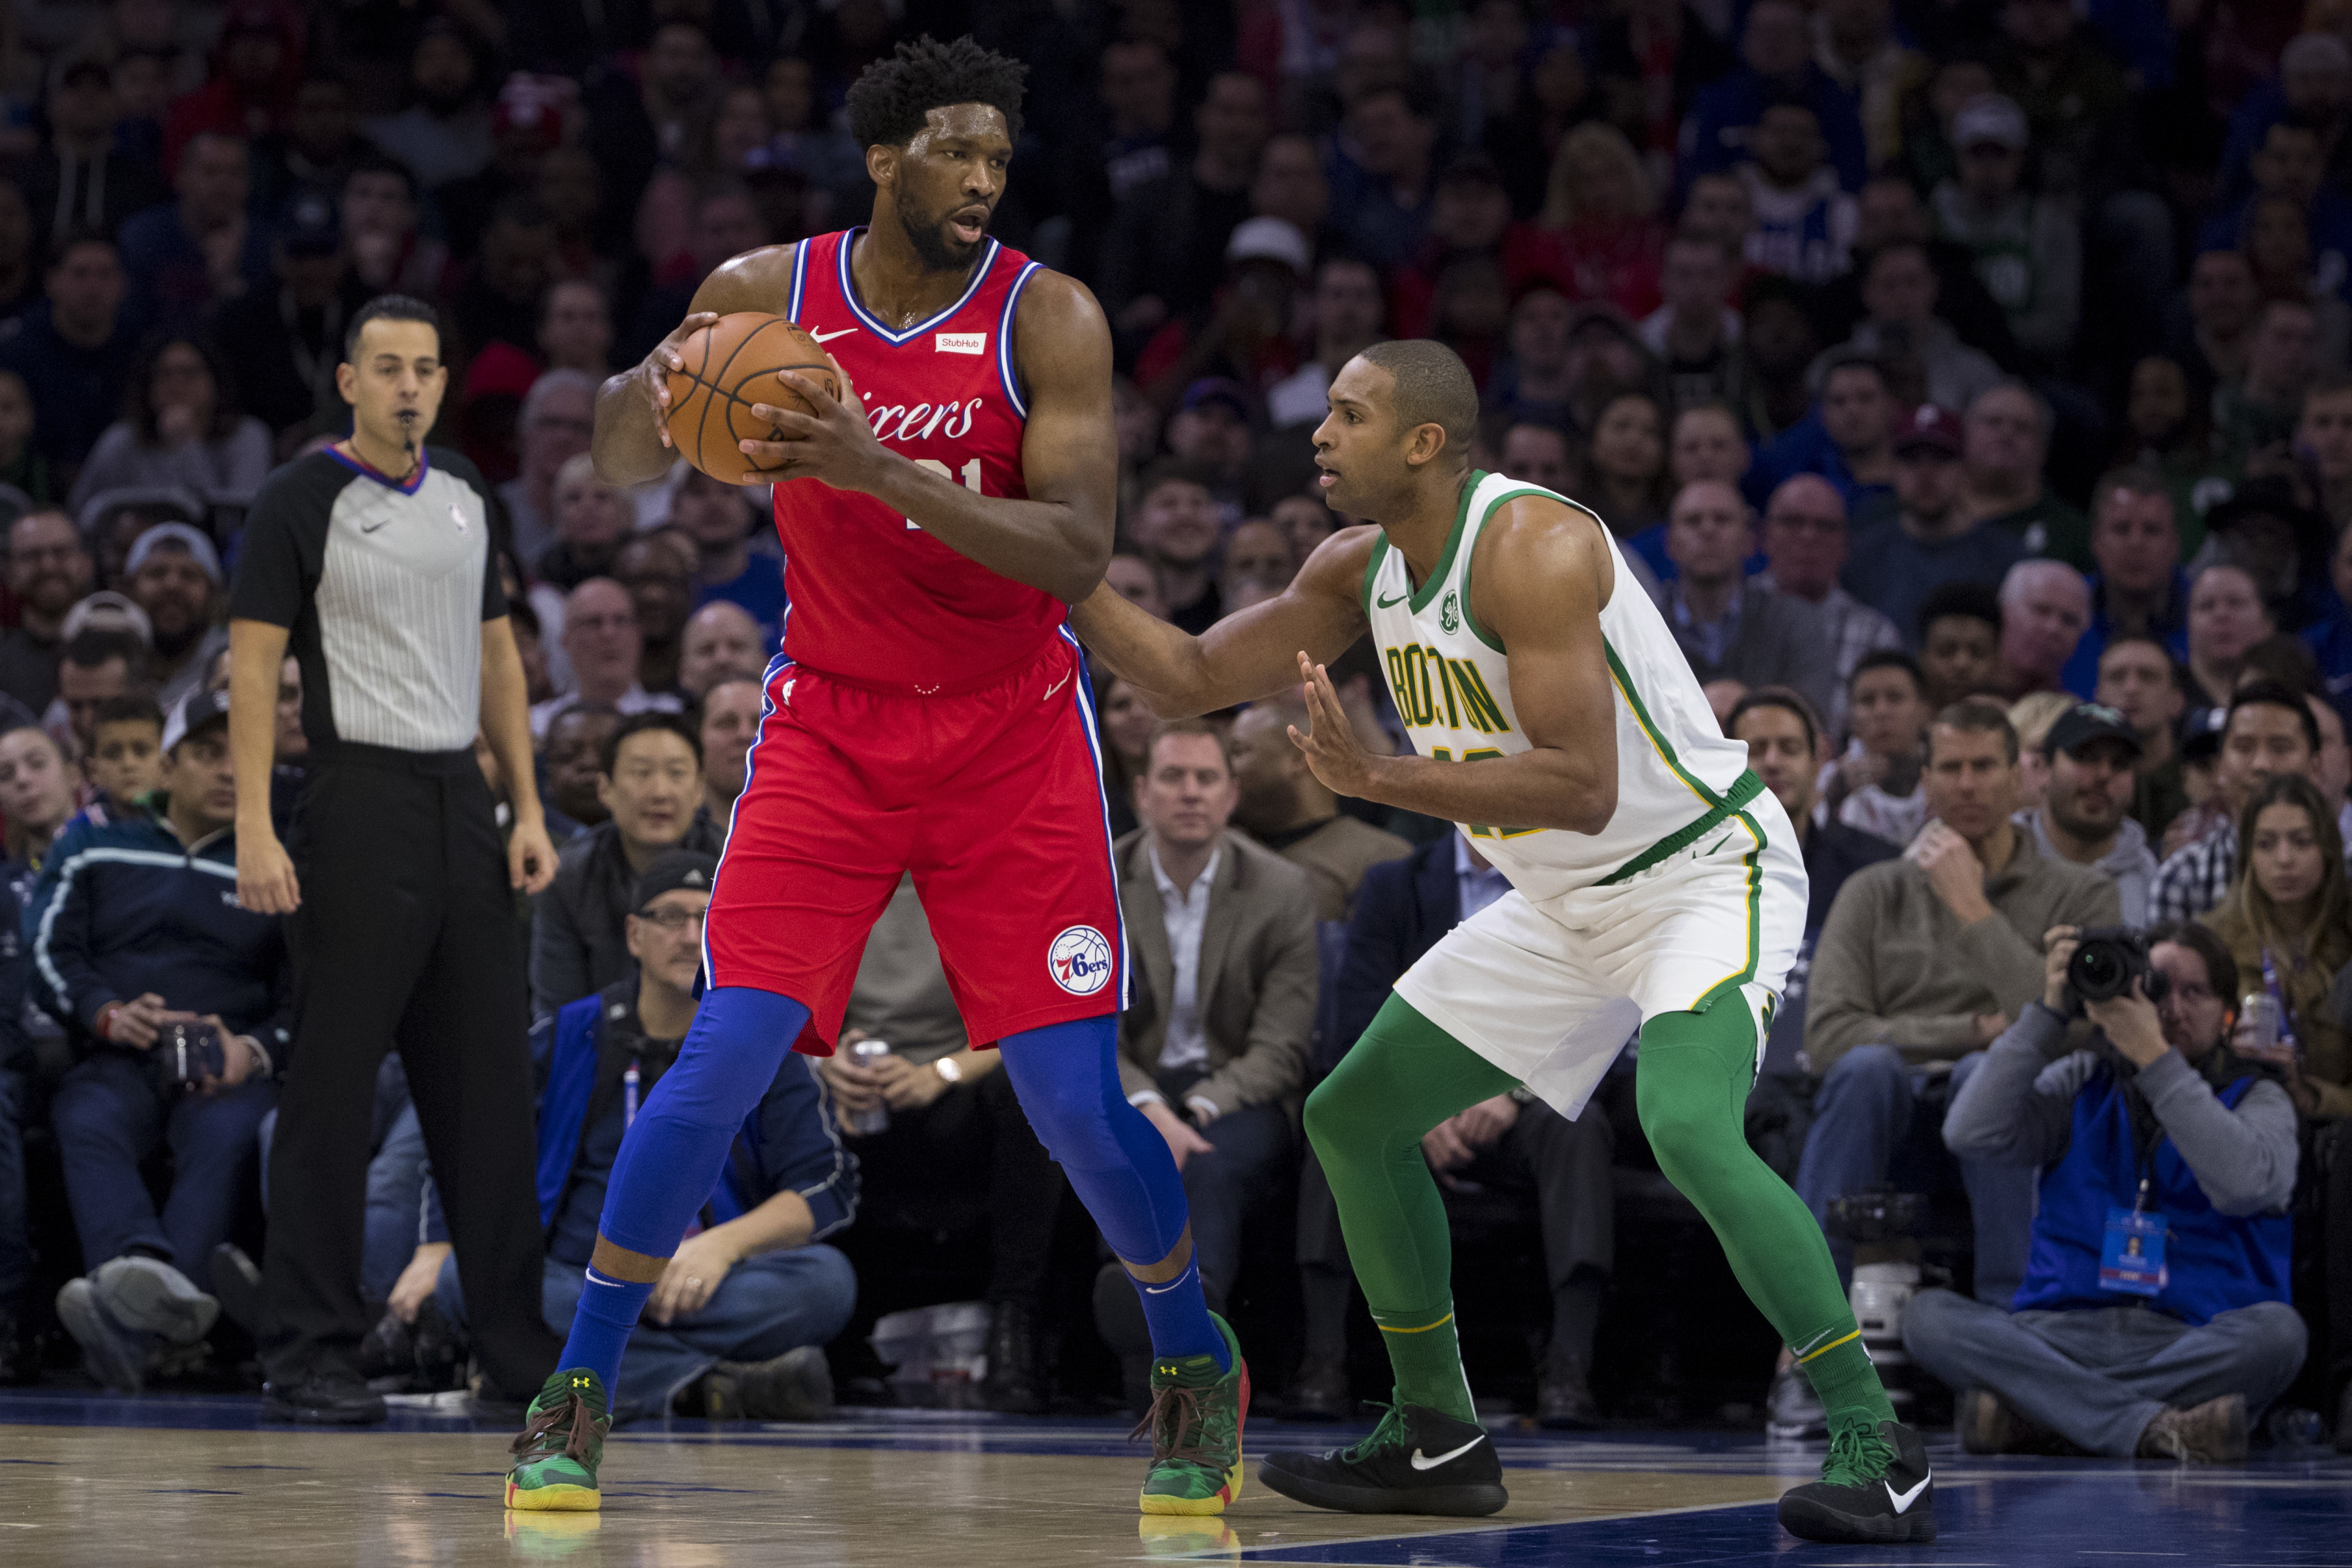 Reassessing Al Horford's departure from the Boston Celtics